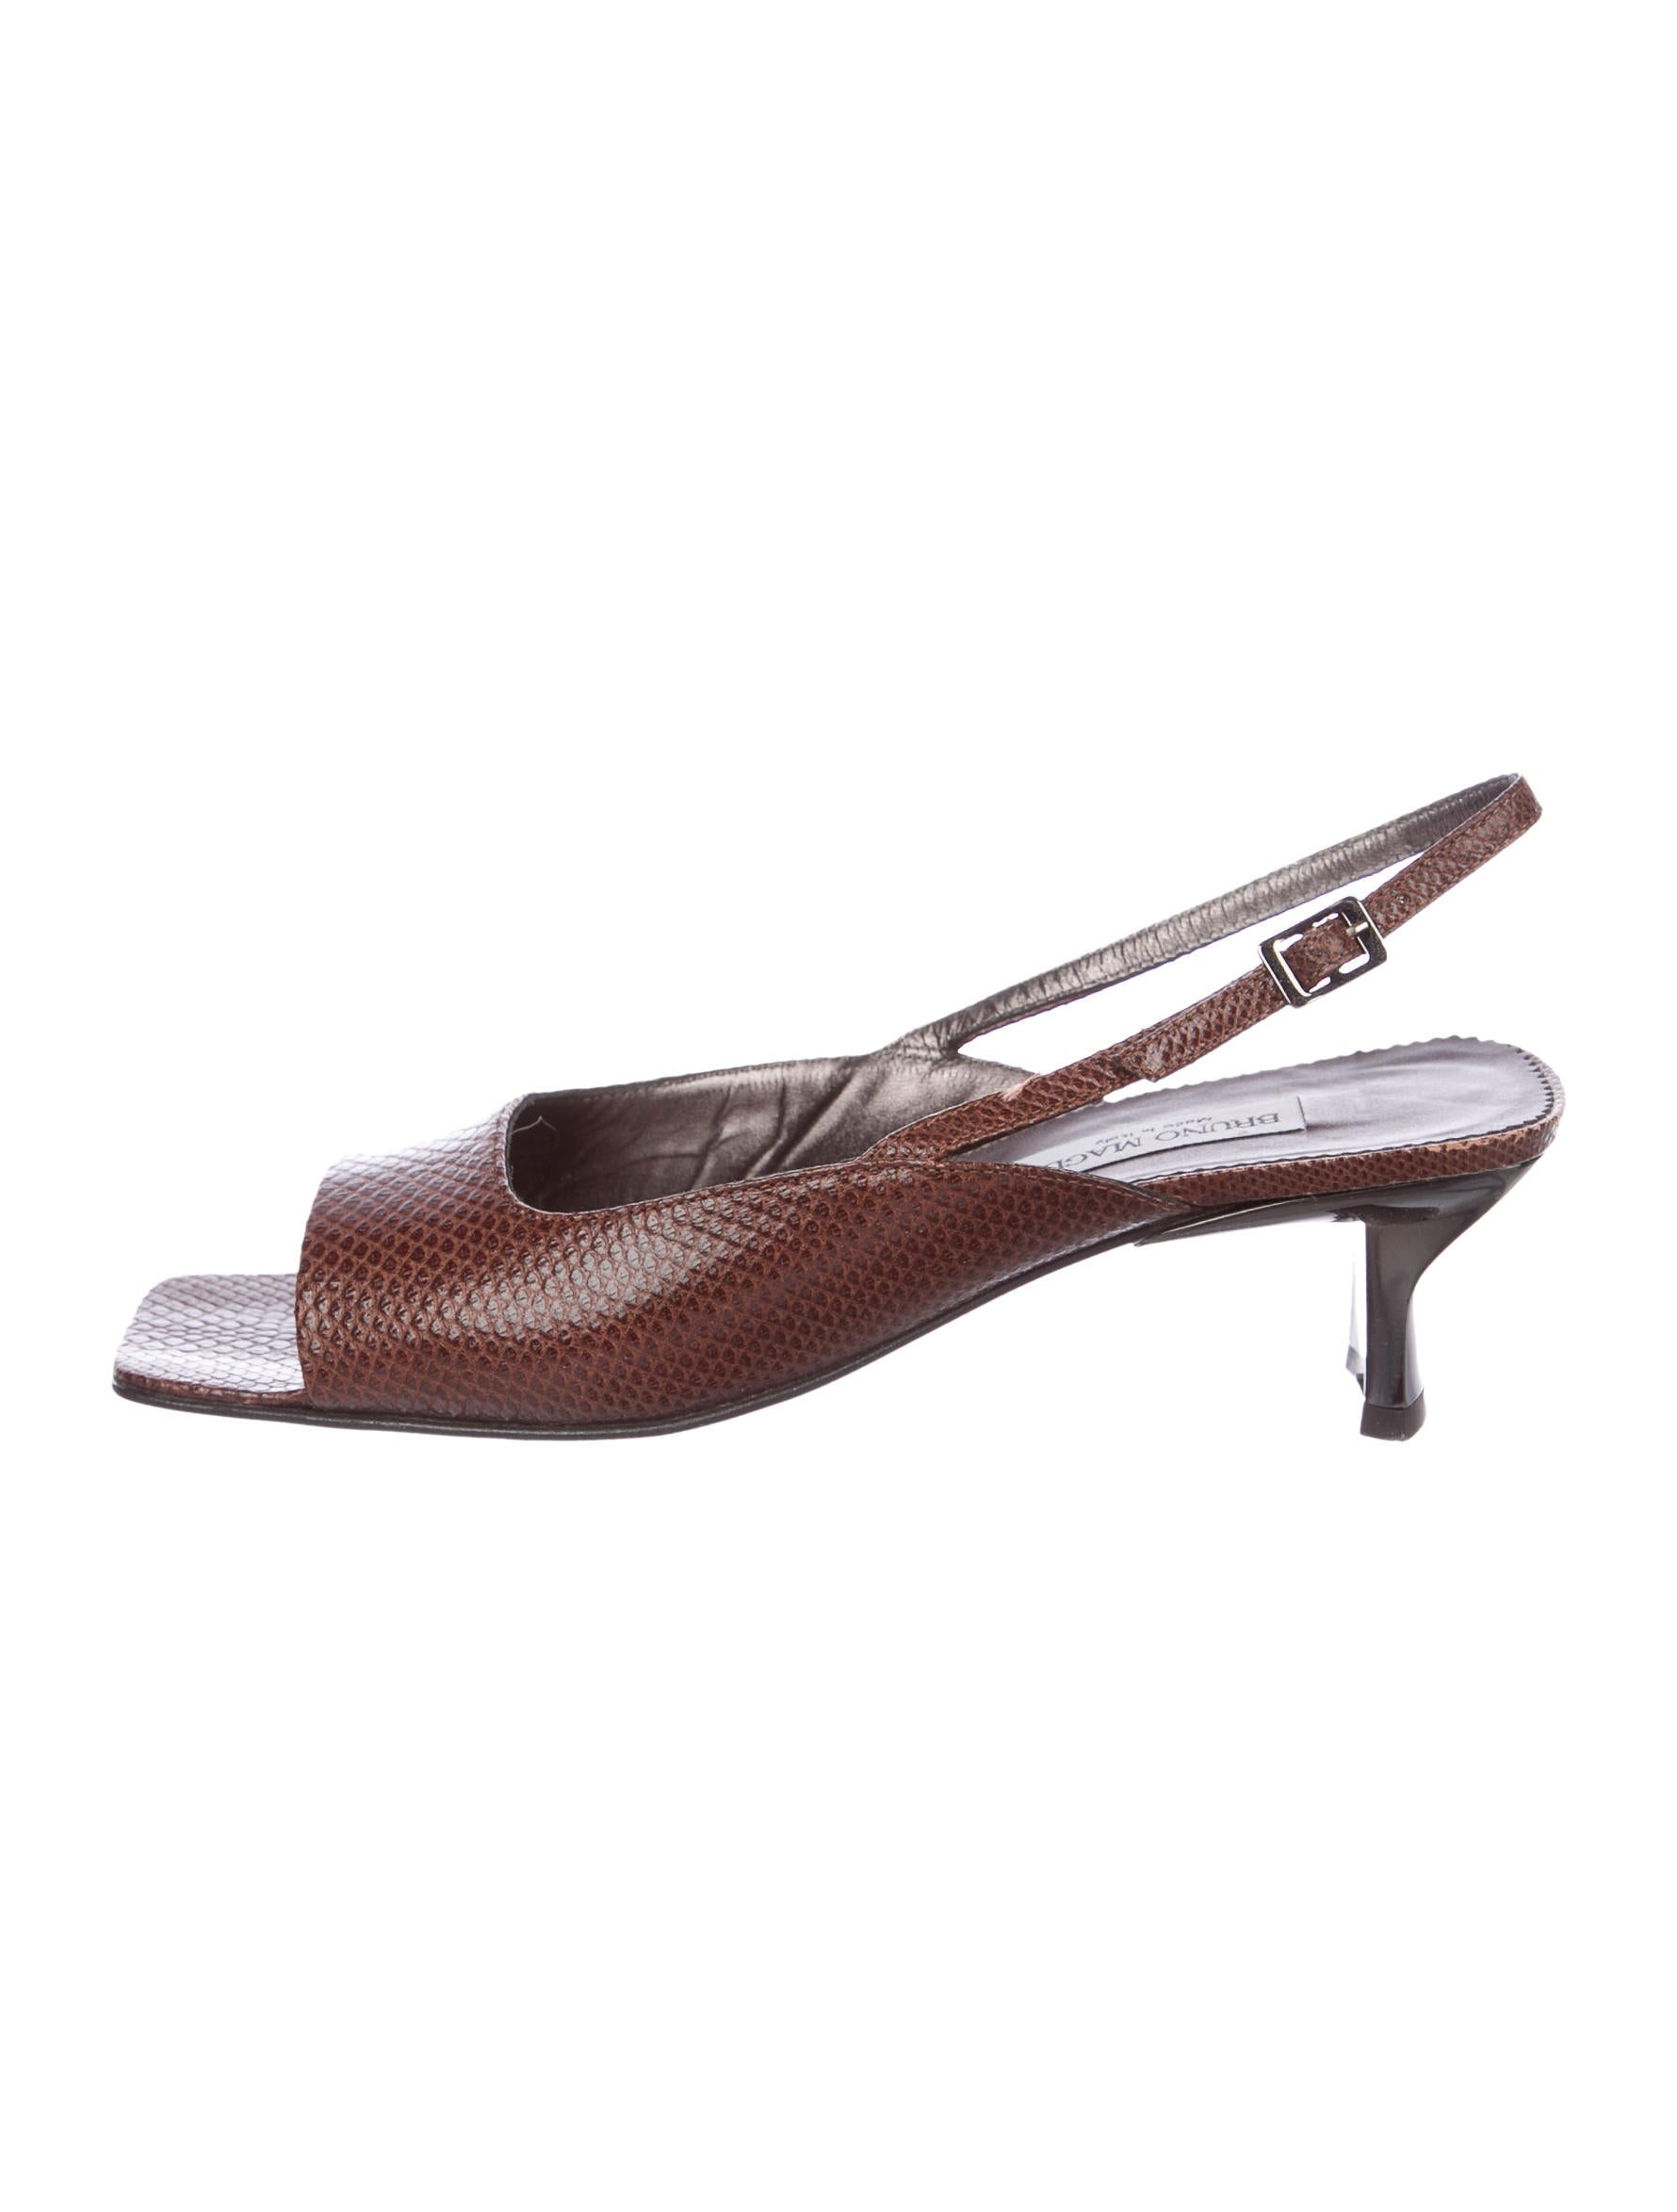 best prices sale online sneakernews Bruno Magli Karung Peep-Toe Pumps best sale cheap online pay with visa online outlet locations for sale ZdyiJqY